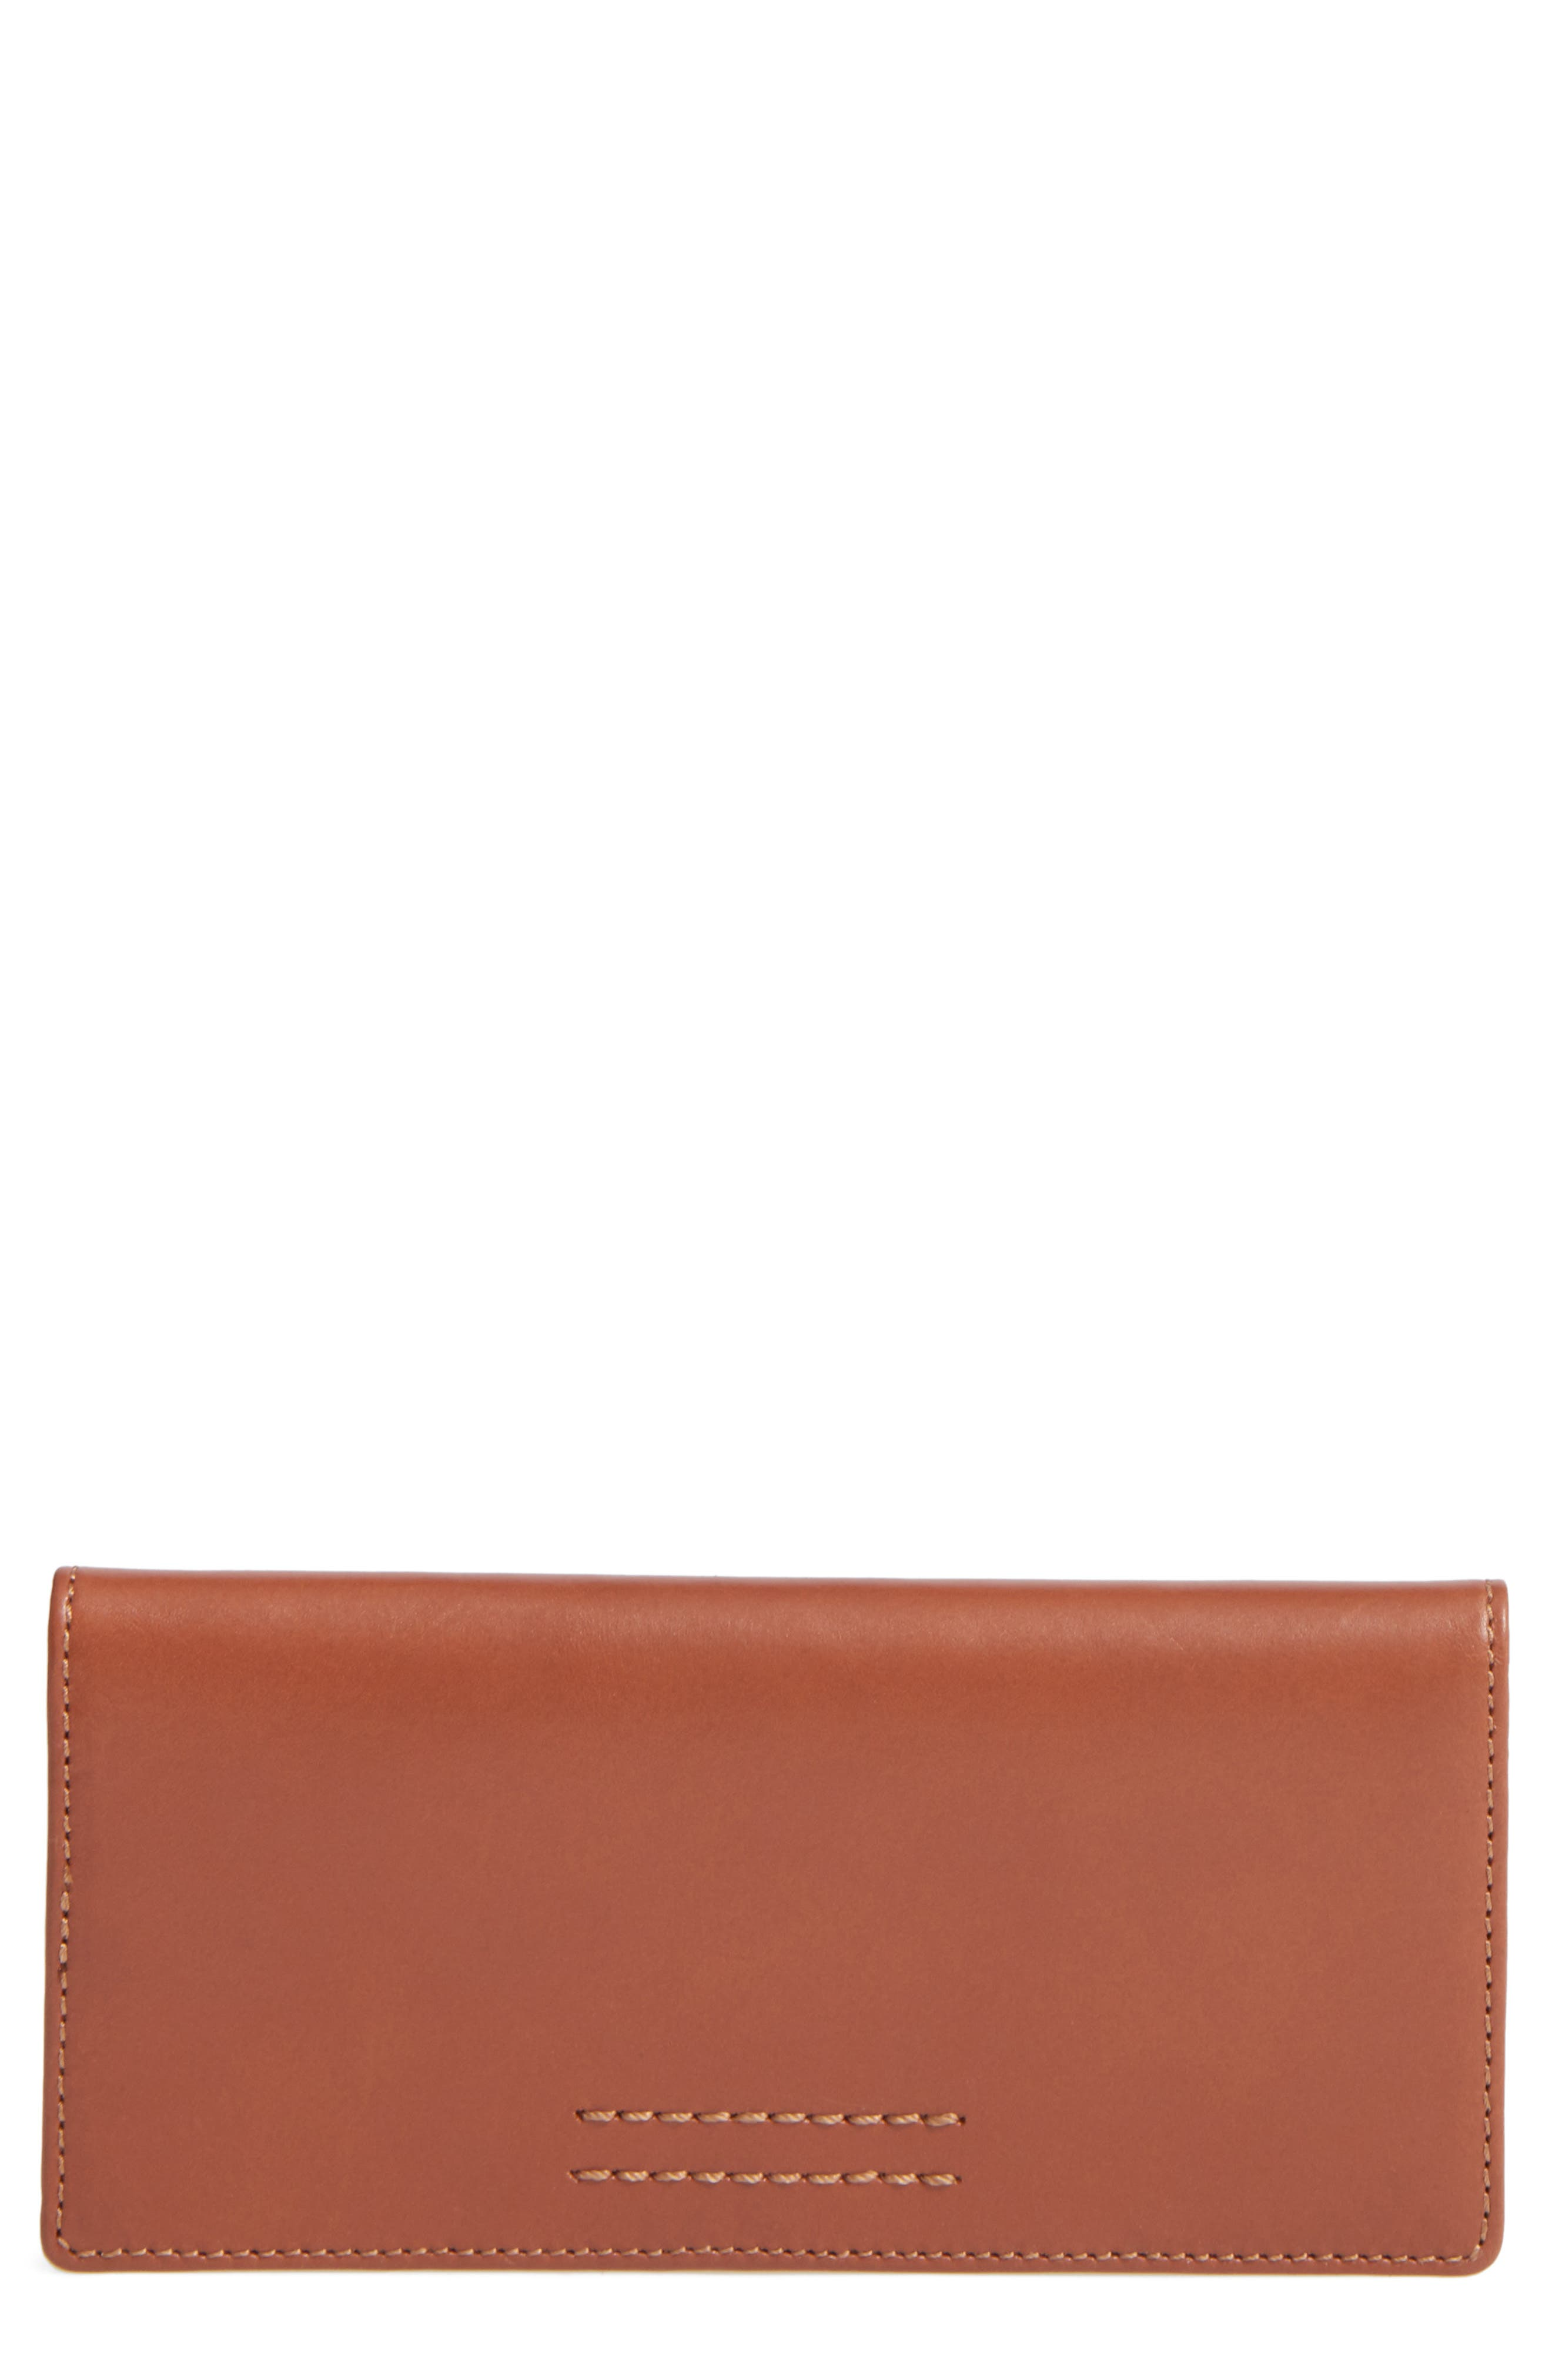 Main Image - Frye Harness Leather Continental Wallet